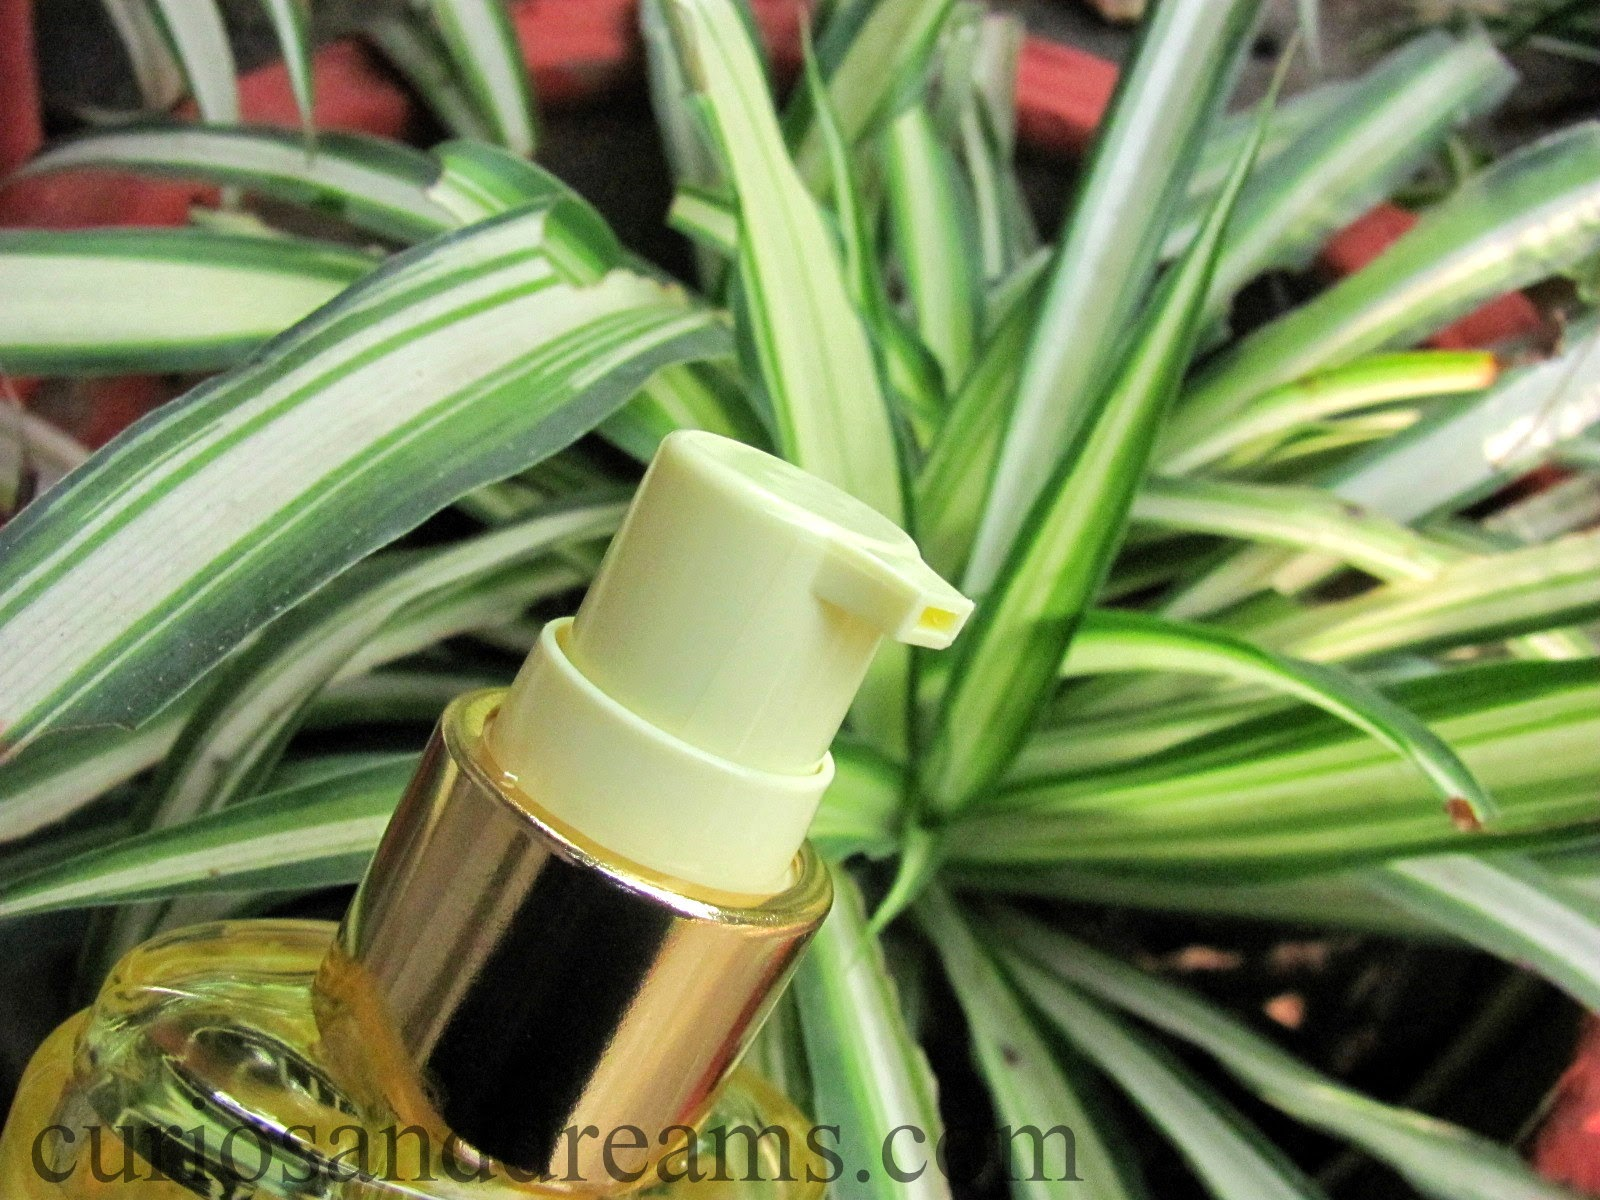 Lotus AloeHydra Moisturising Gel Review